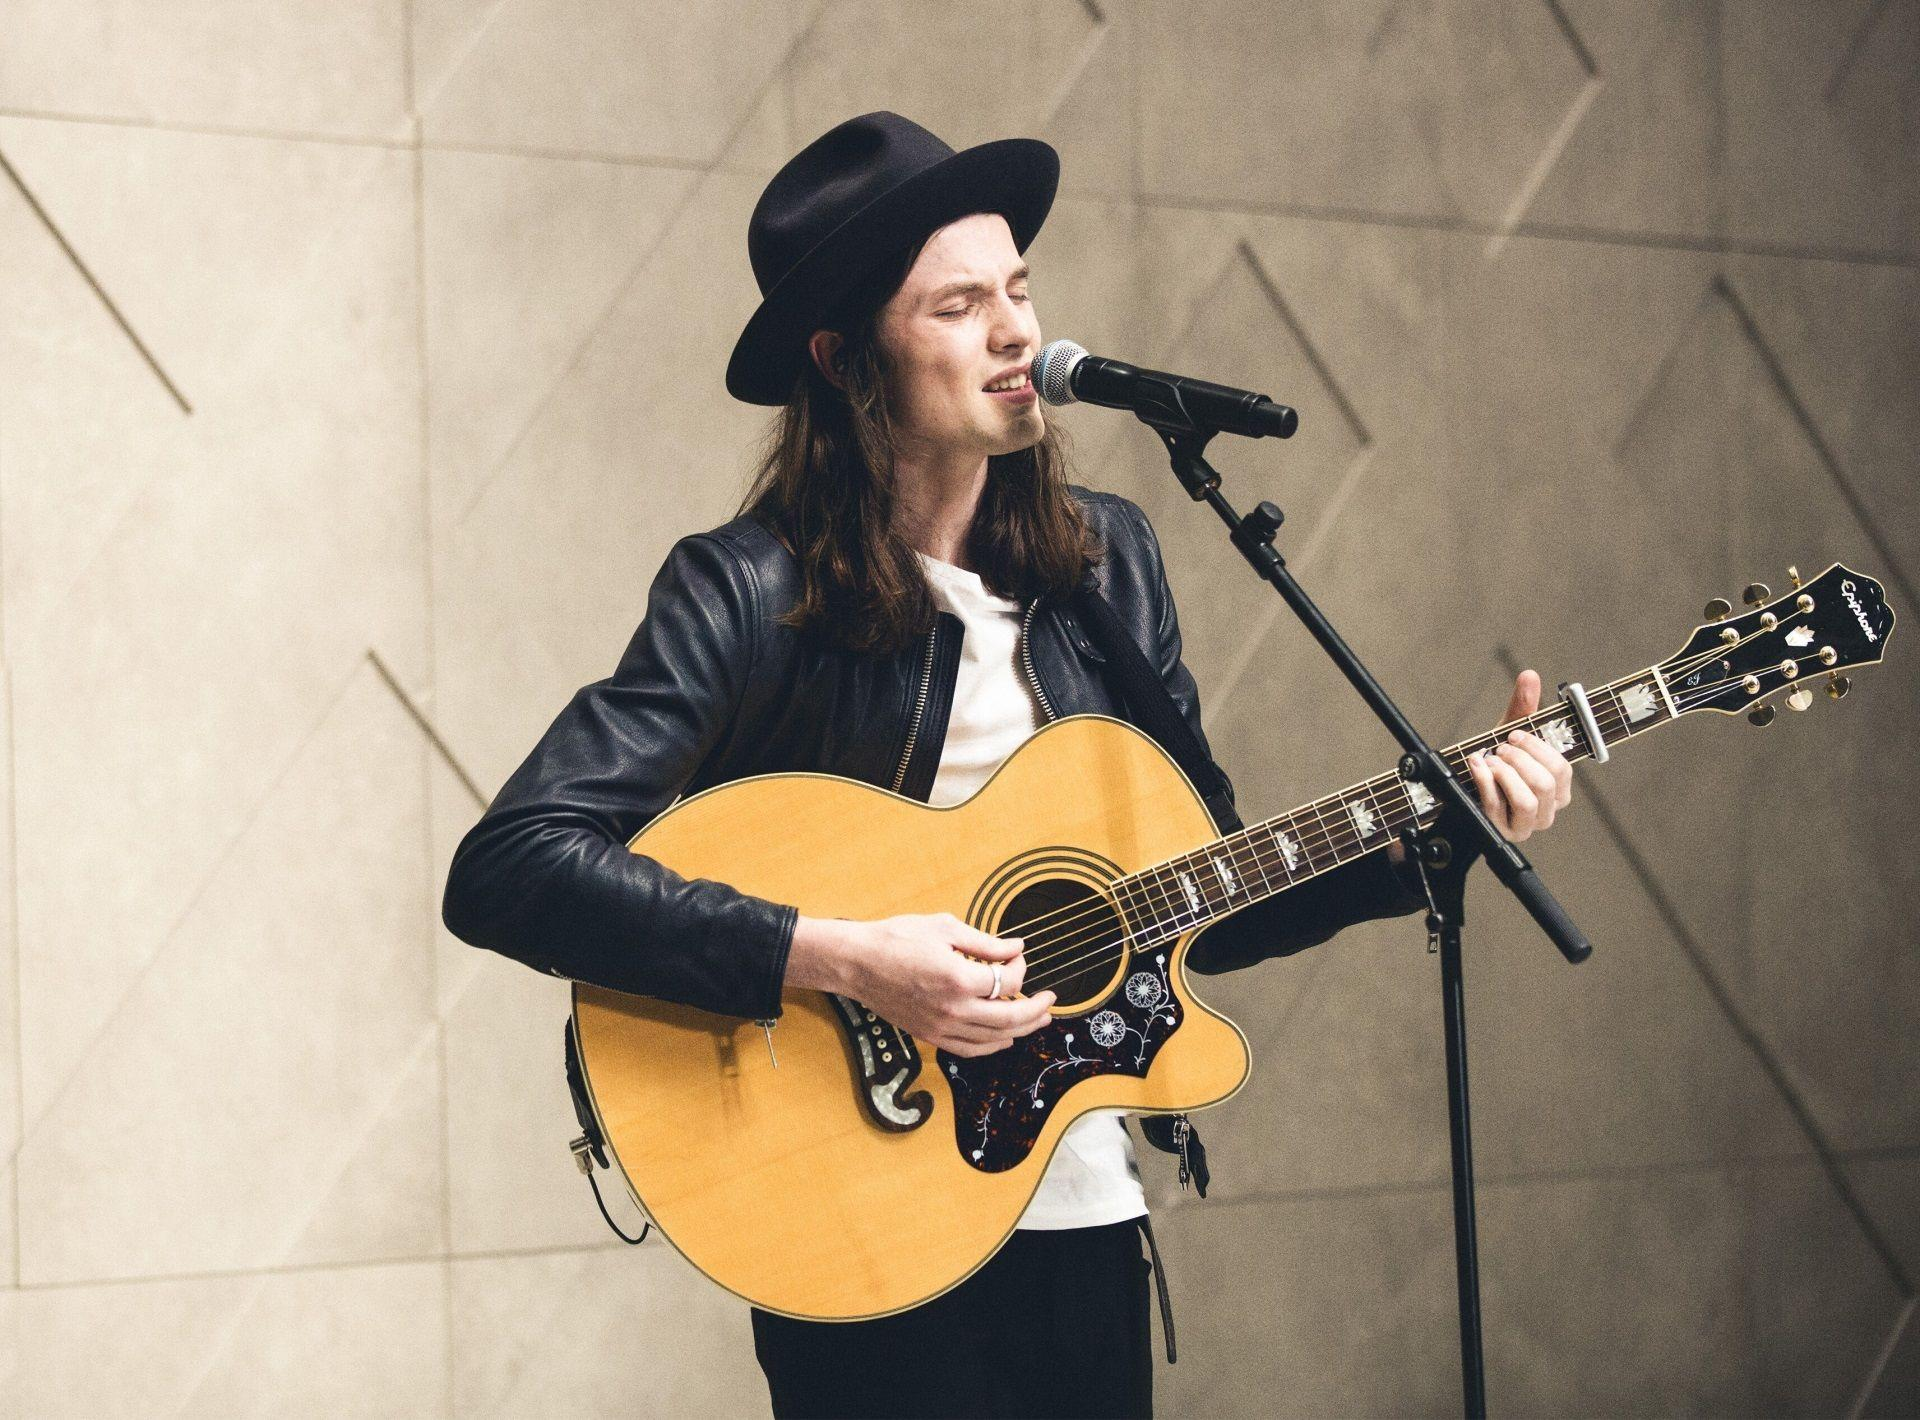 1920x1420 james bay free hd wallpapers free download